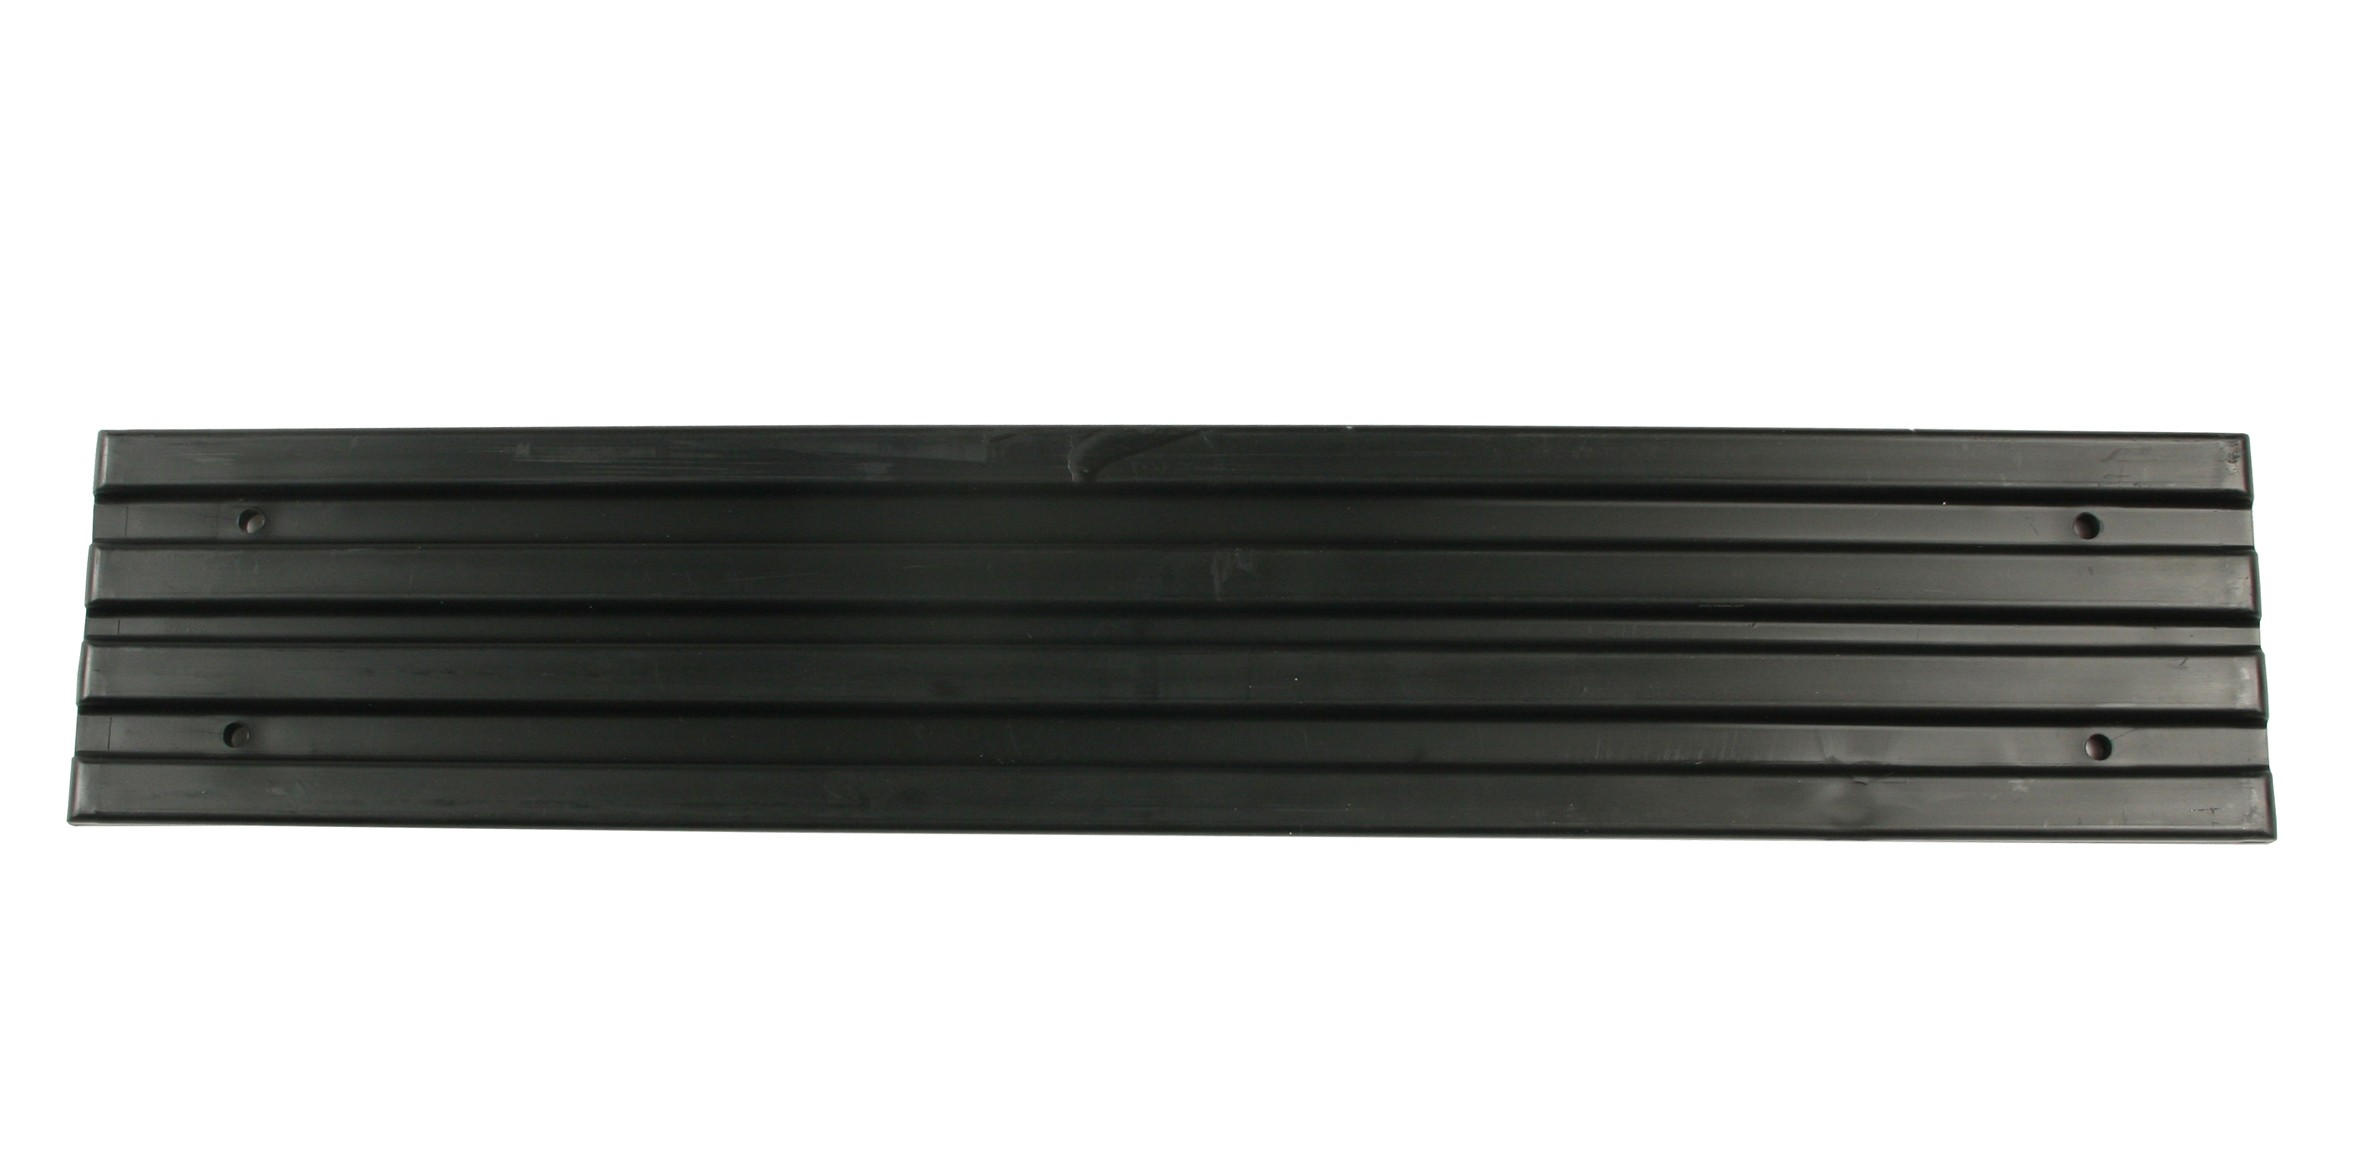 "Black Bunk Glides - 3"" x 16"" - Sold Individually"